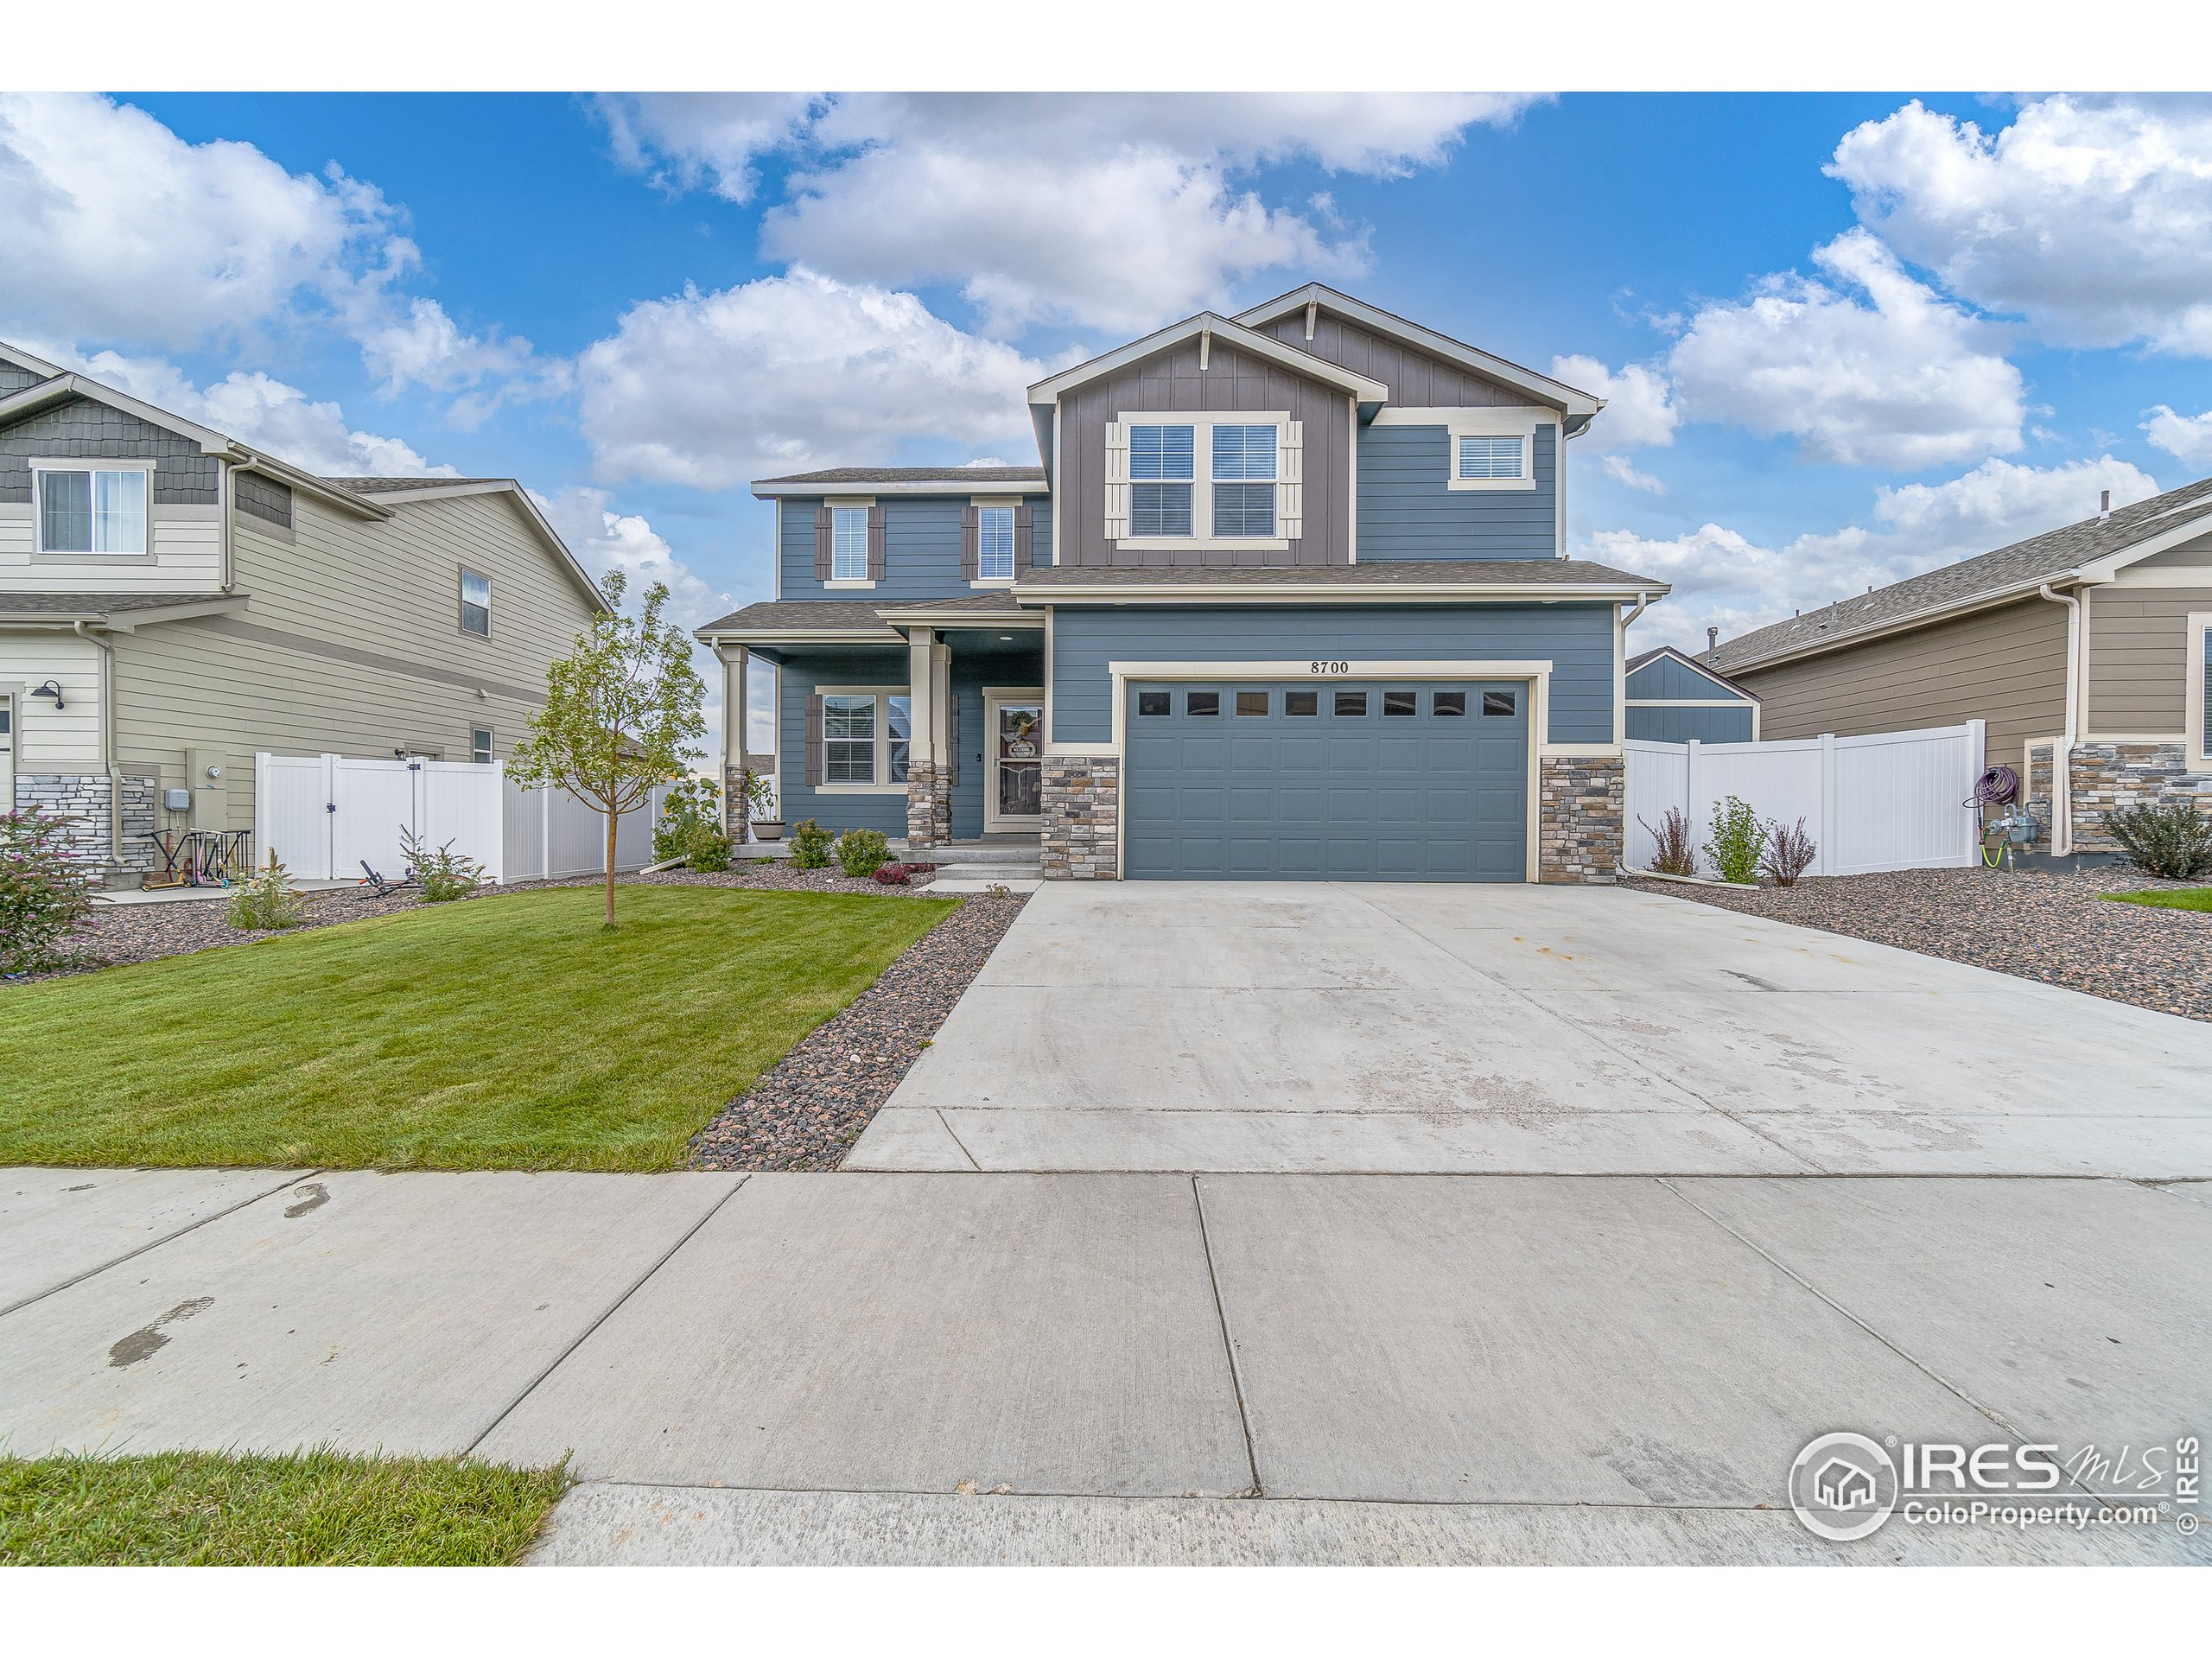 Welcome to 8700 15th St., Greeley!